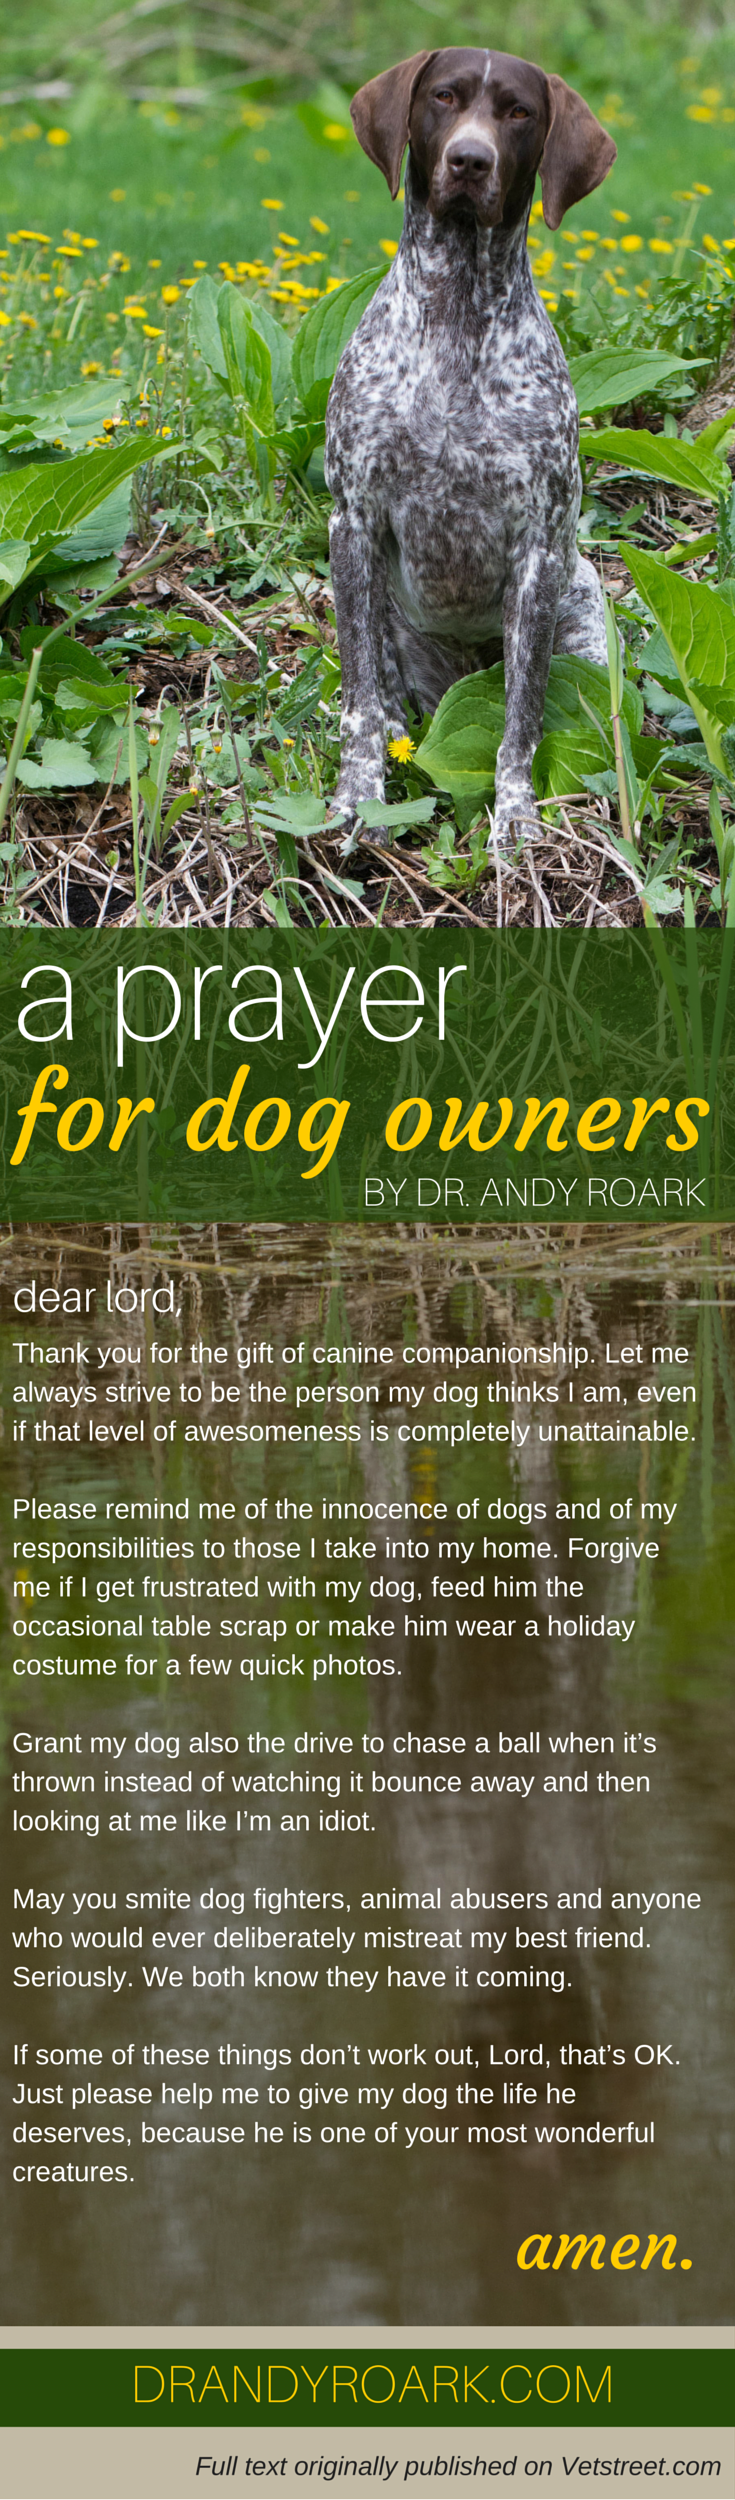 Dr. Andy Roark's prayer for dog owners. Share with any